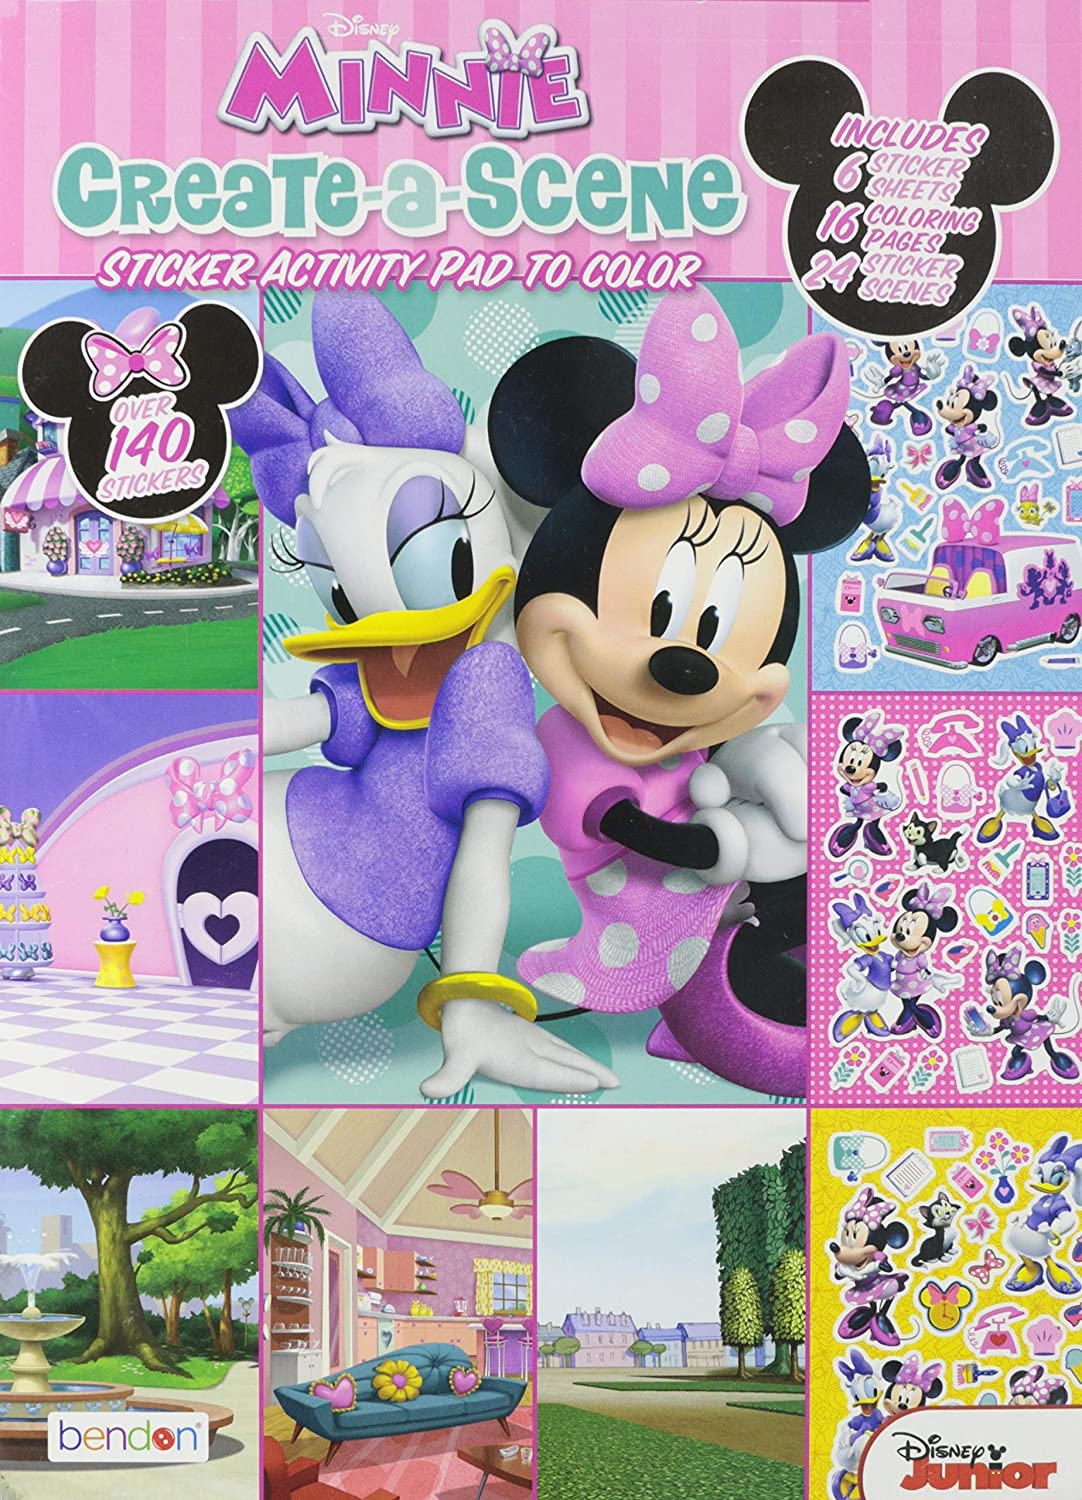 Disney Mickey Mouse and Minnie Mouse Stickers Activities Minnie Mouse Create a Scene